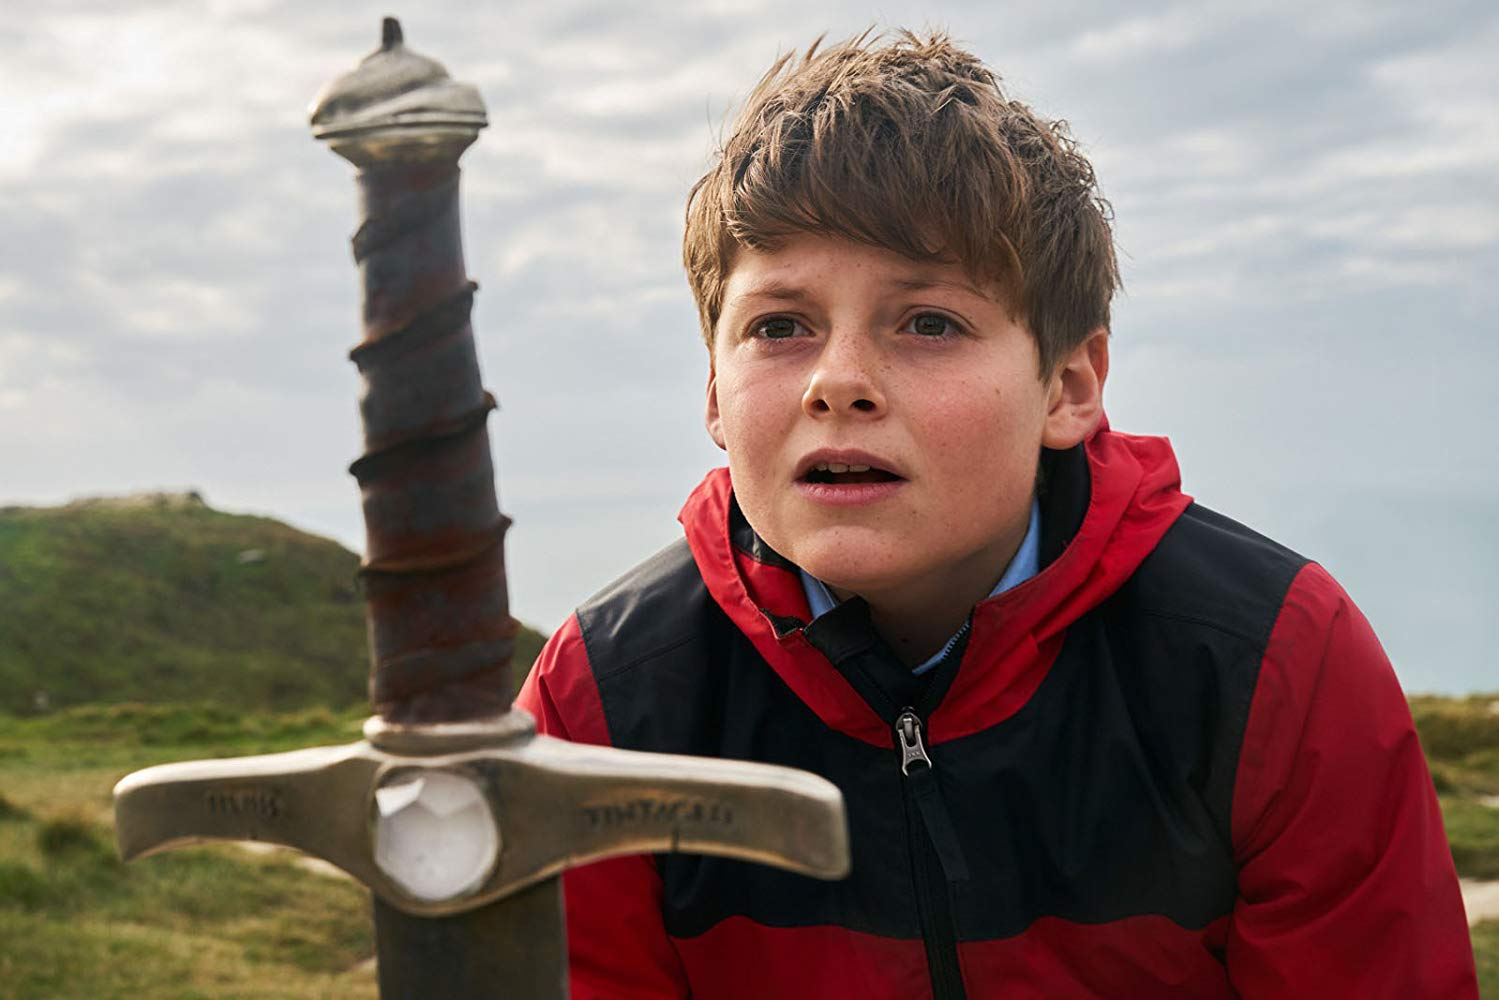 The Kid Who Would Be King, Movie Review by Rawlins, Fantasy, 20th Century Fox, Adventure, Family, Comedy, Rawlins GLAM